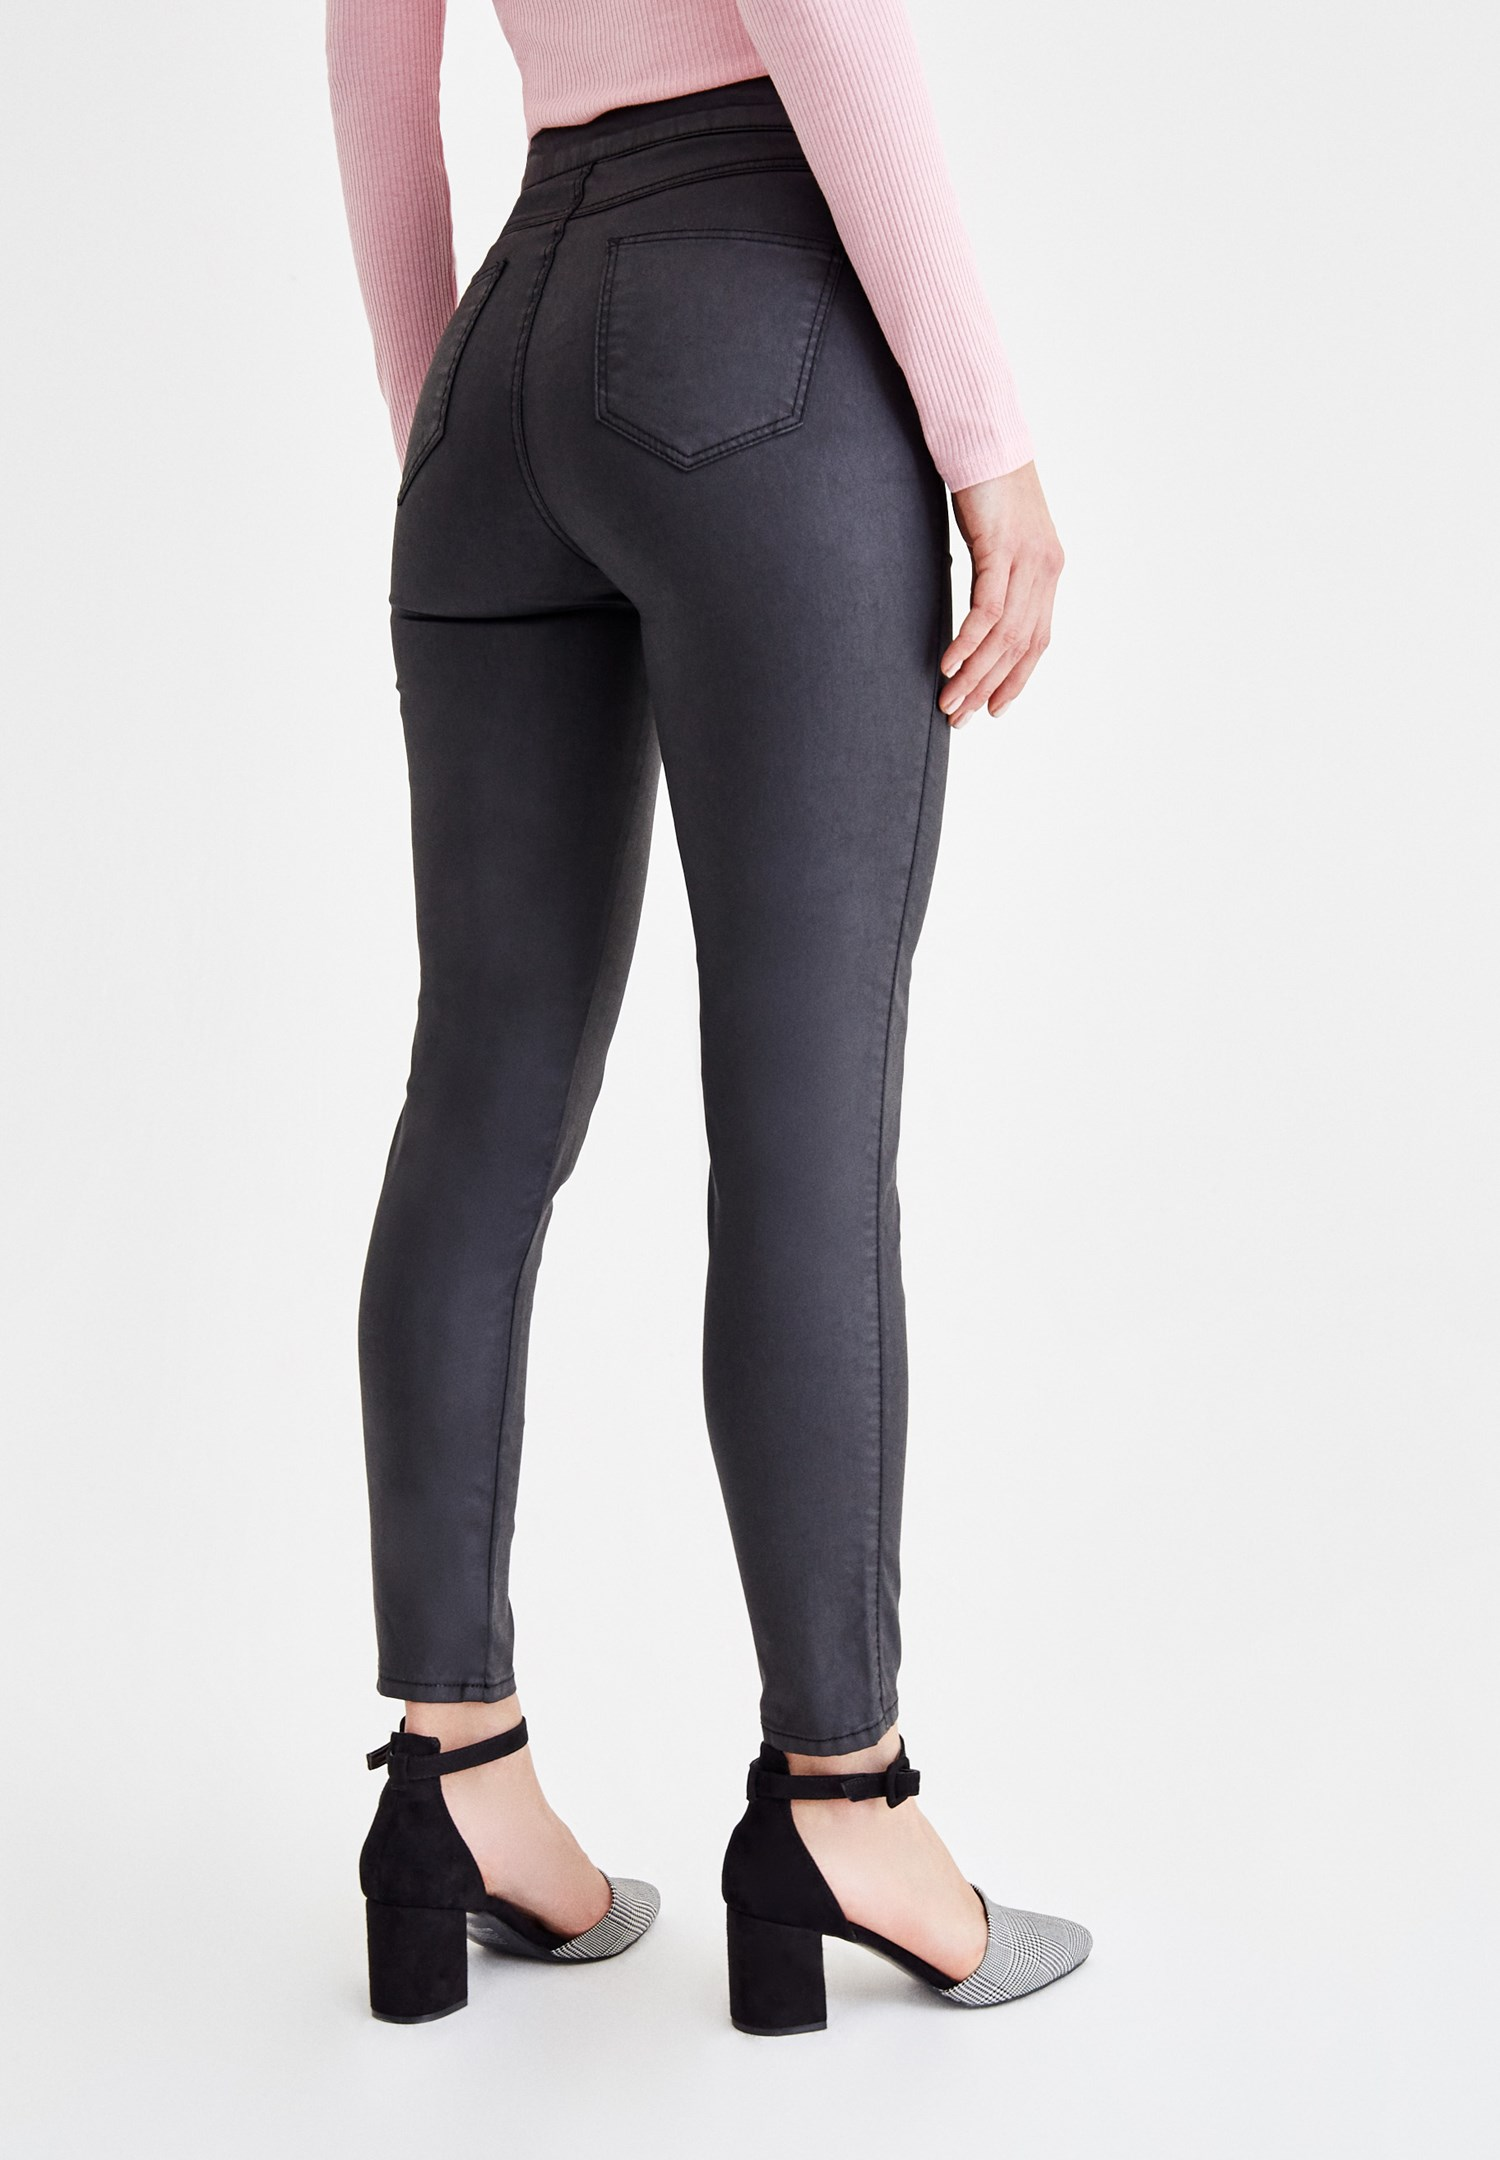 Women Black Skinny Jeans with Zipper Details